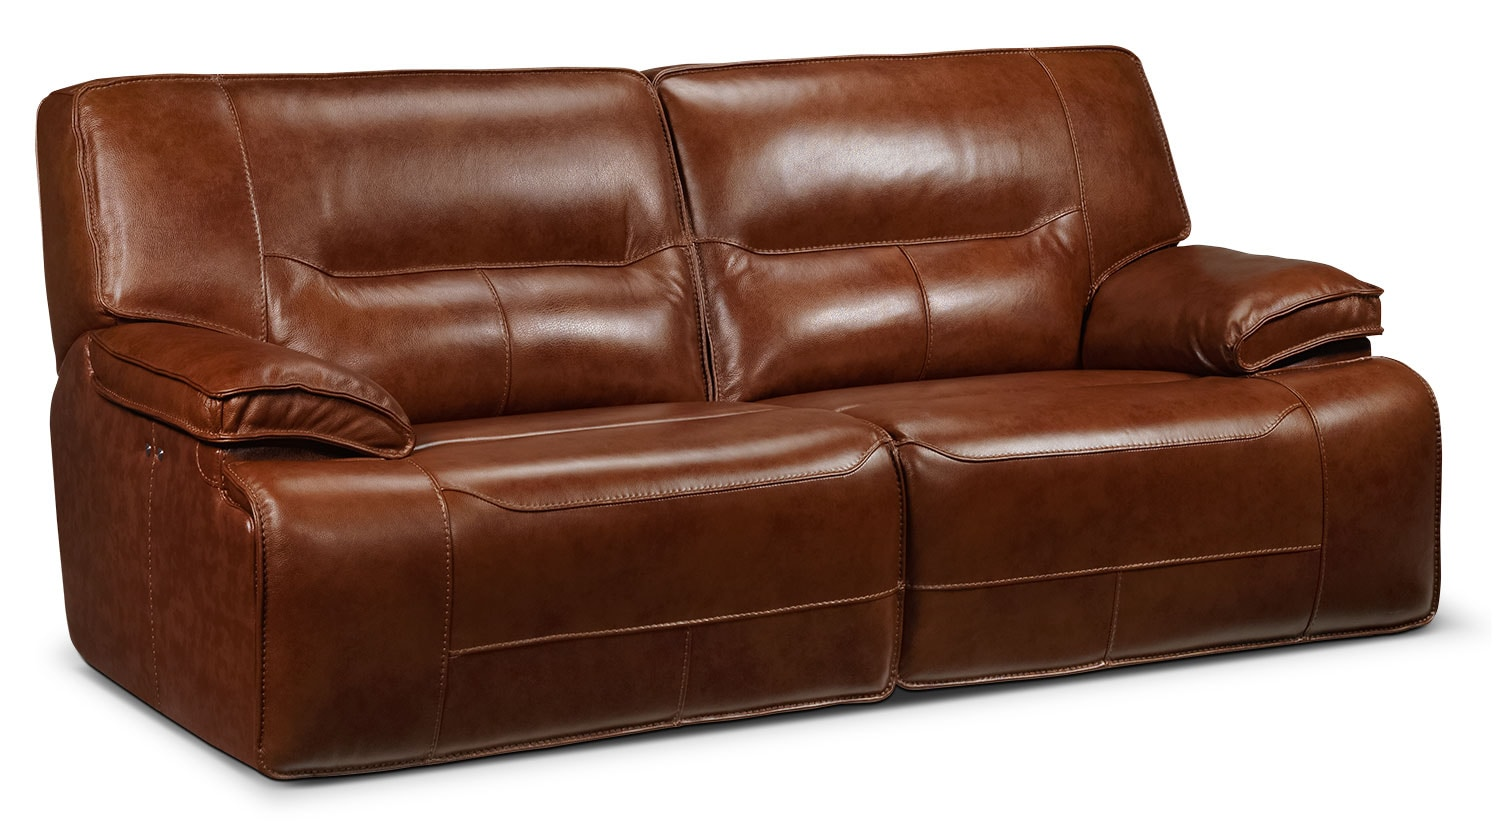 Living Room Furniture - Baxter Power Reclining Sofa - Chestnut